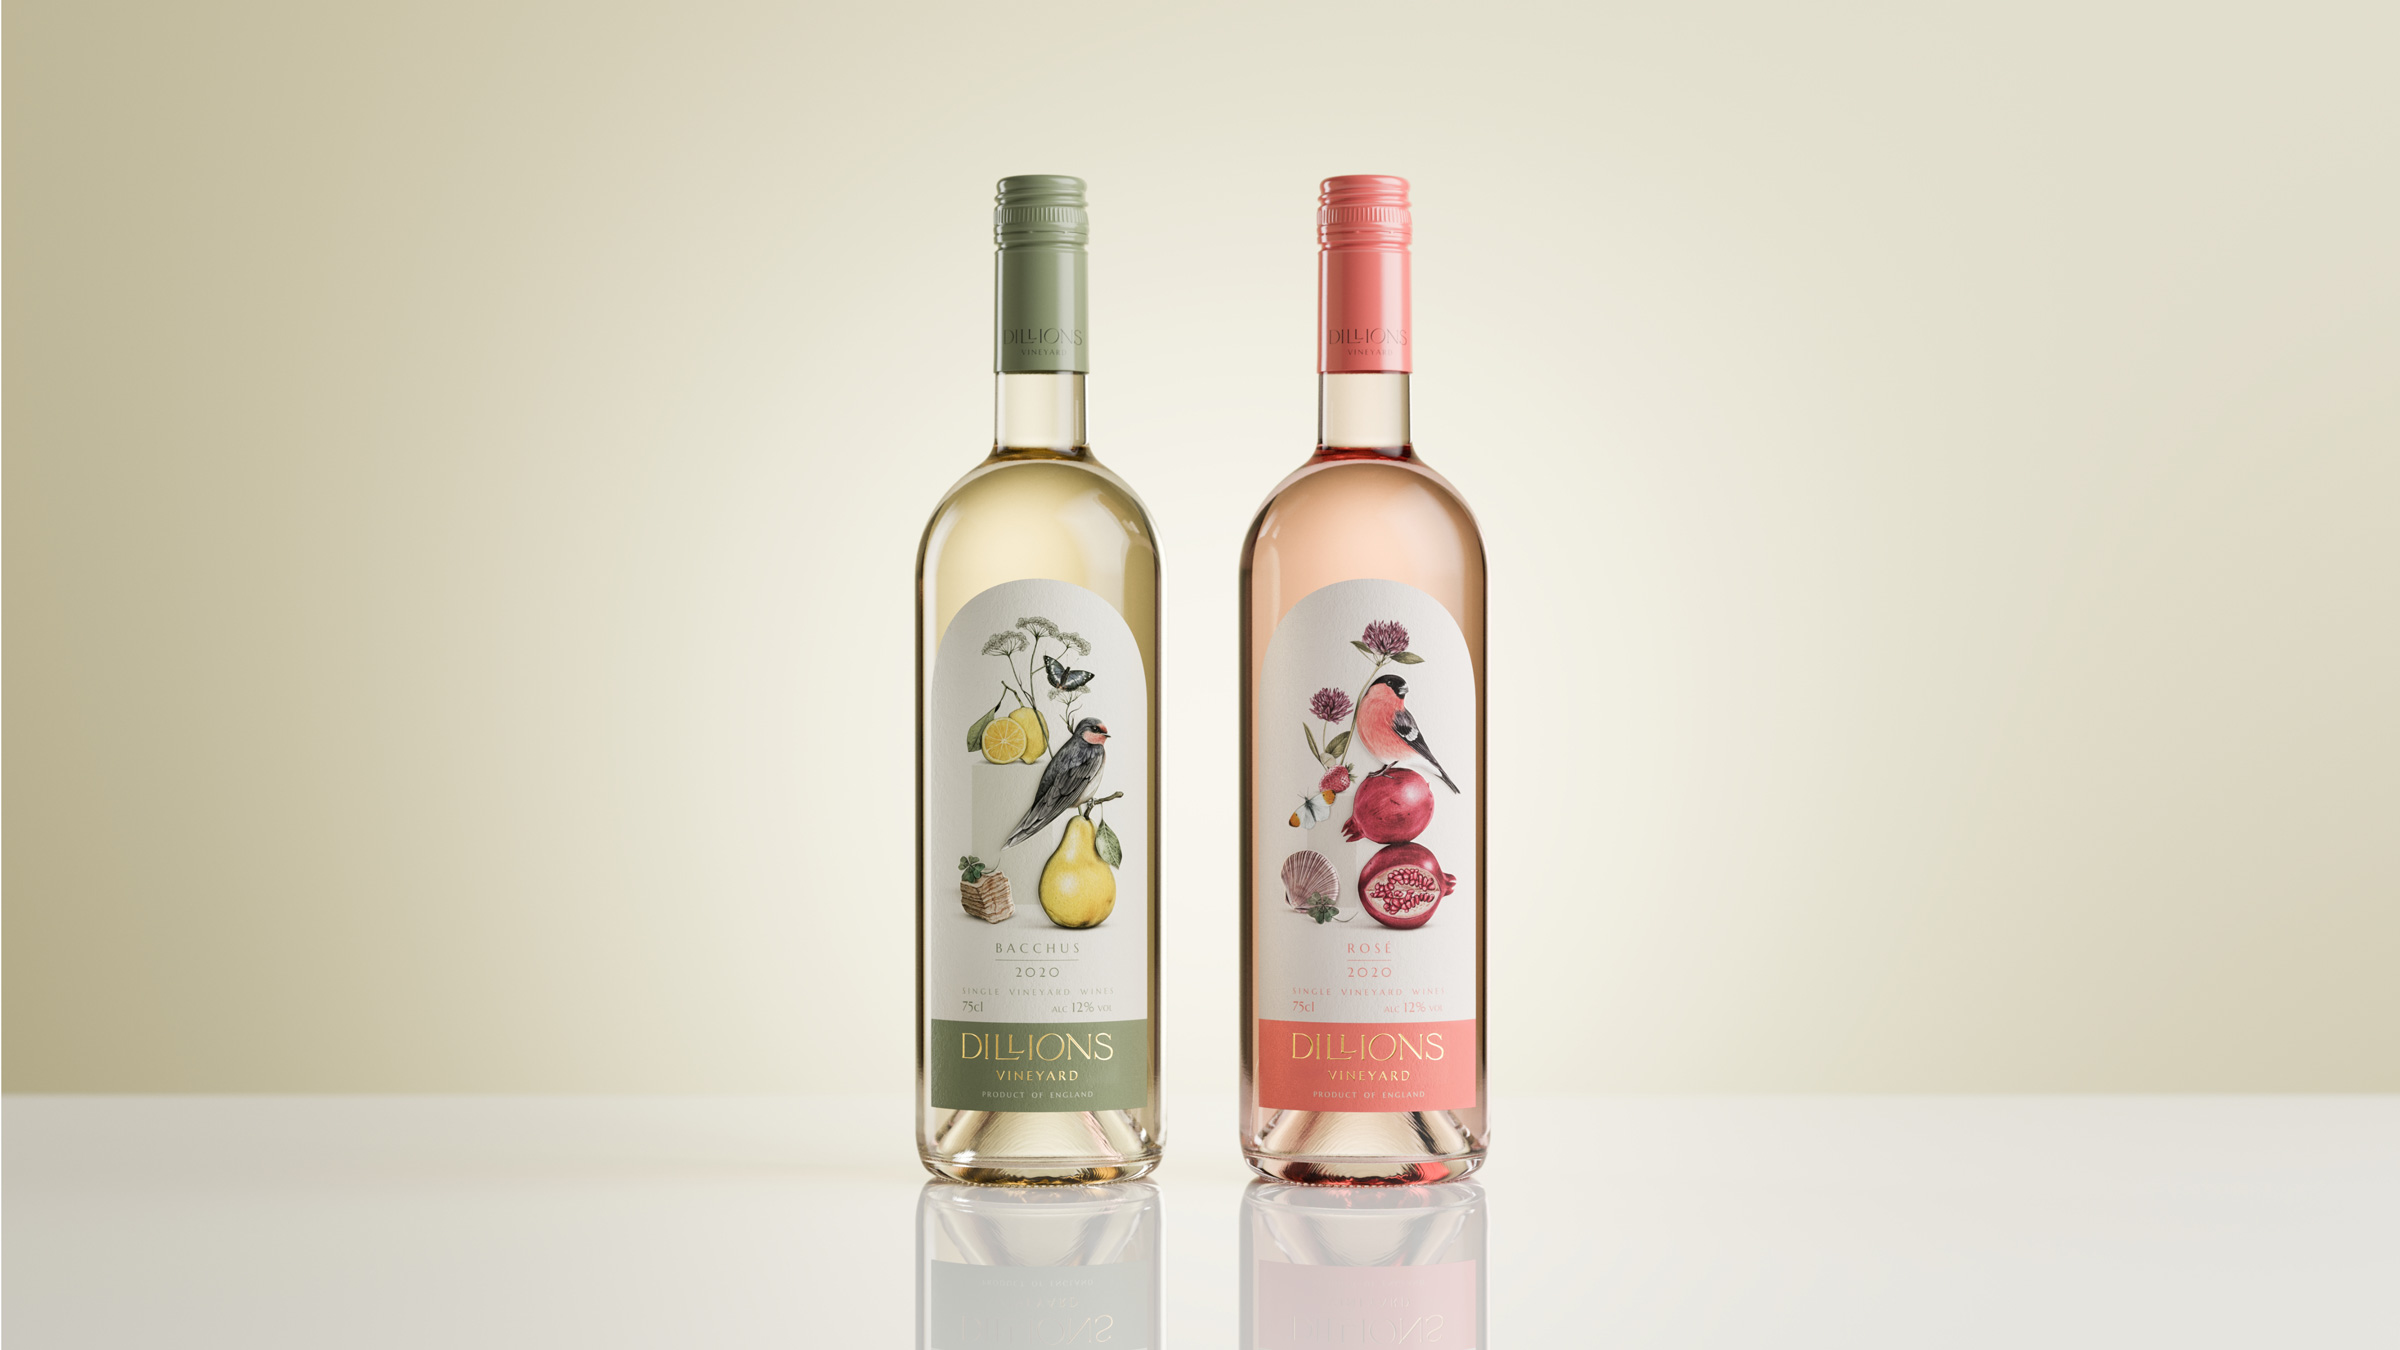 Kingdom and Sparrow Creates Illustrative Wine Labels for Untraditional Boutique English Wines